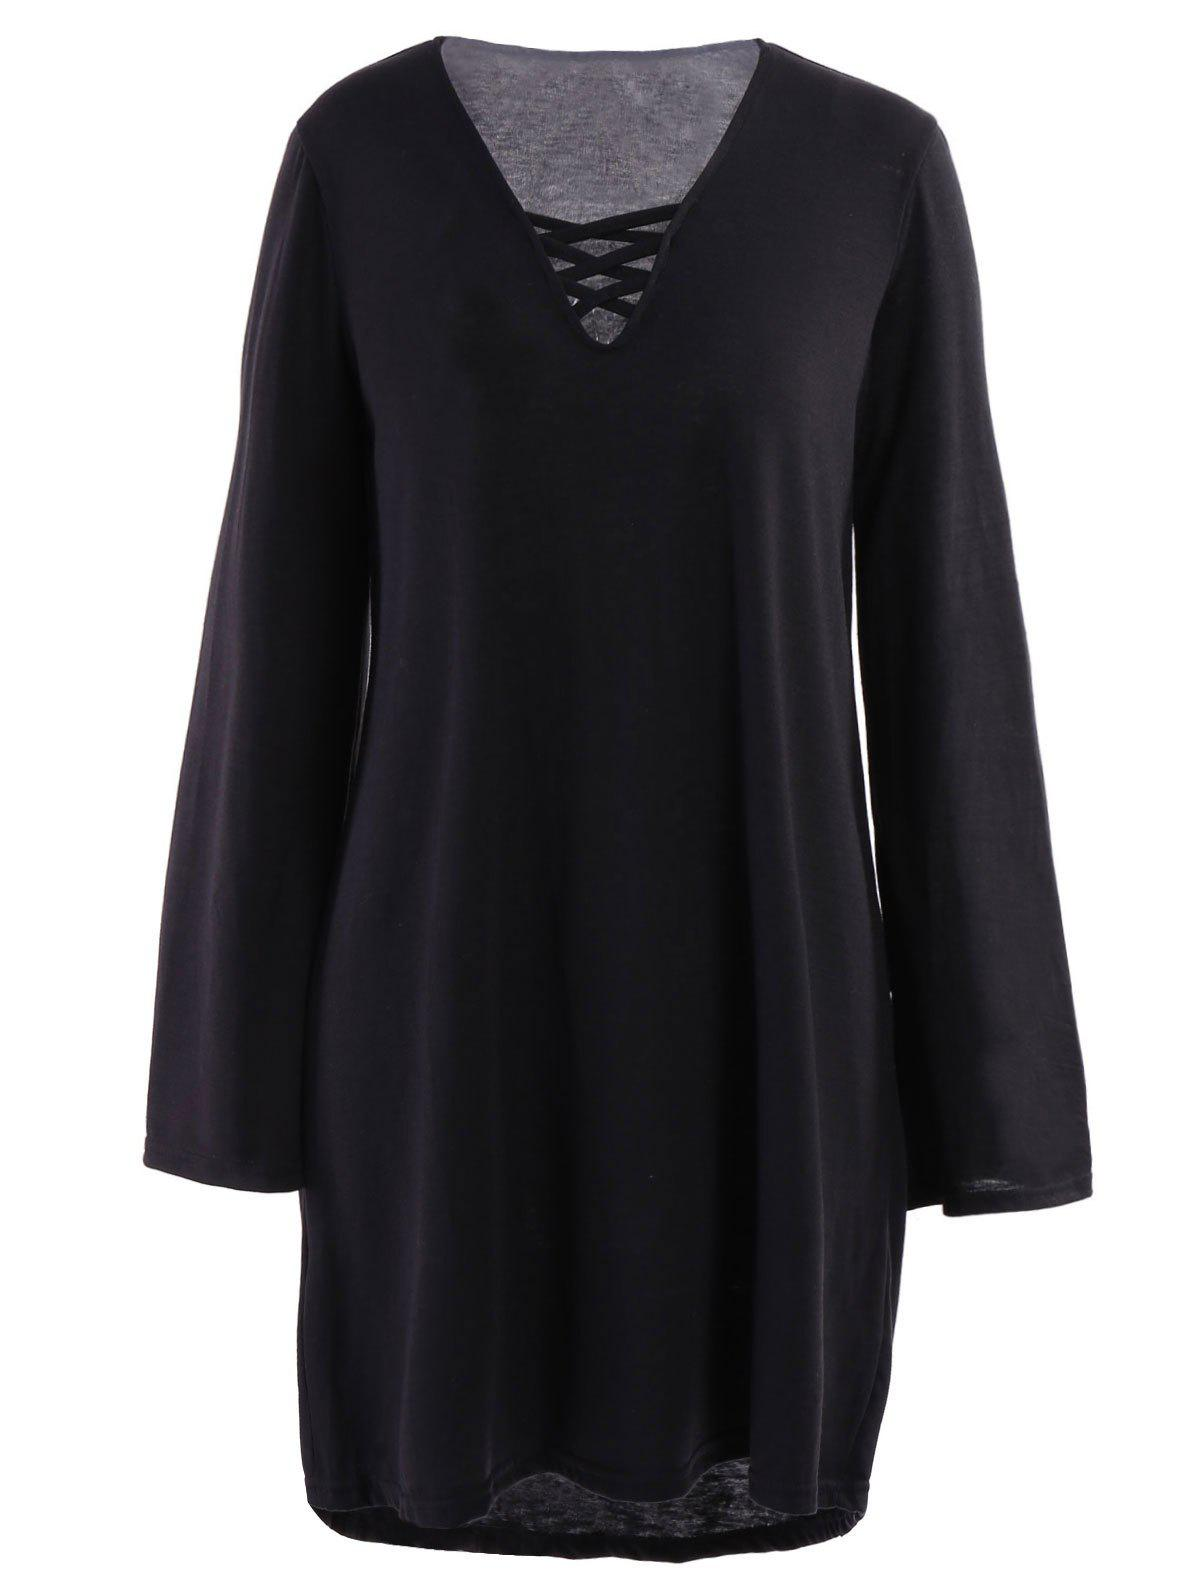 Black dress loose -  Sexy Long Sleeve V Neck Black Loose Fitting Lace Up Women S Dress